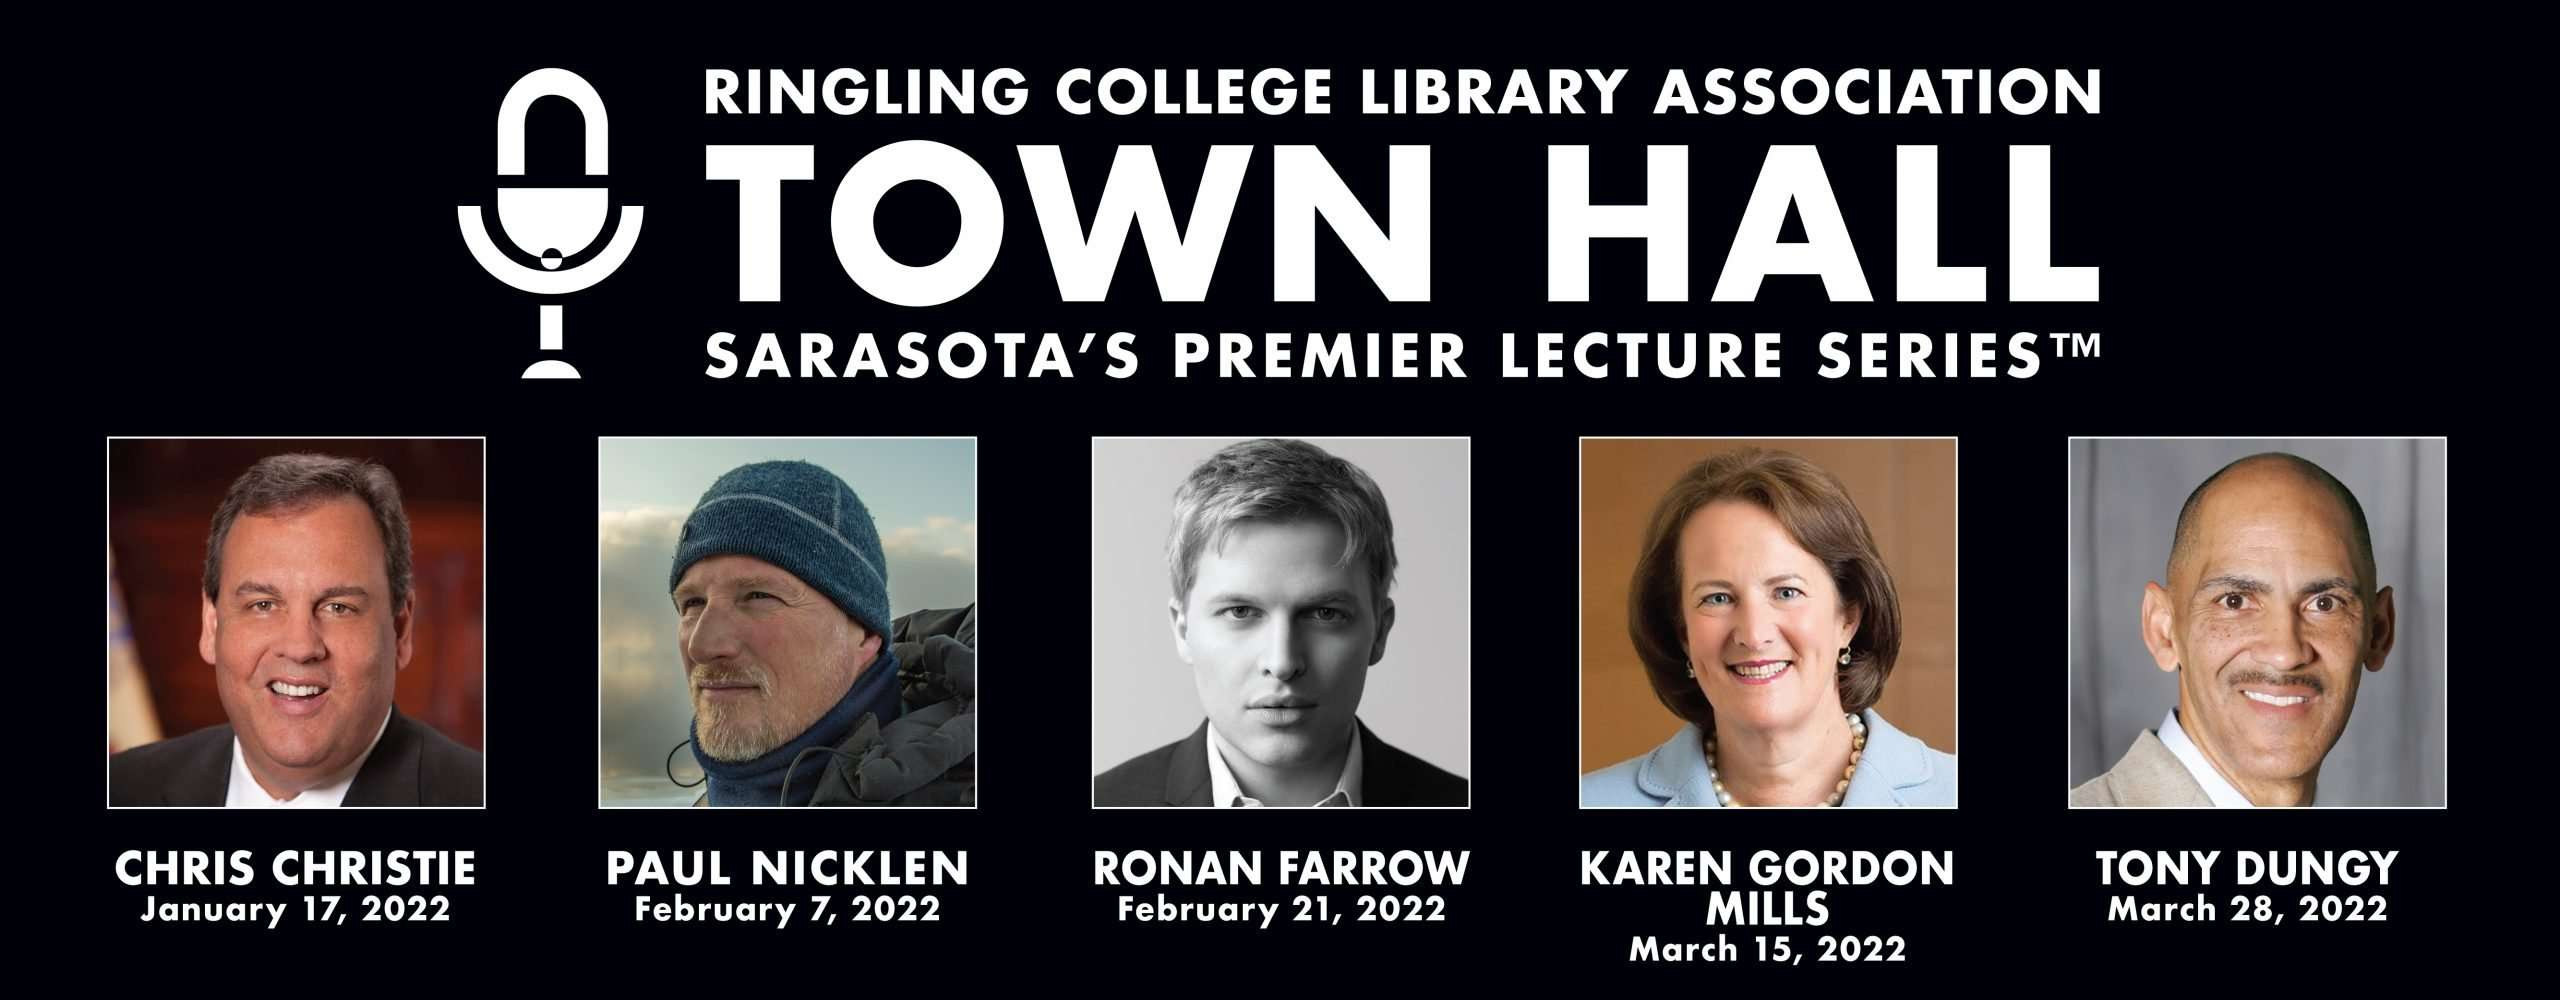 2022 TOWN HALL Lecture Series Lineup